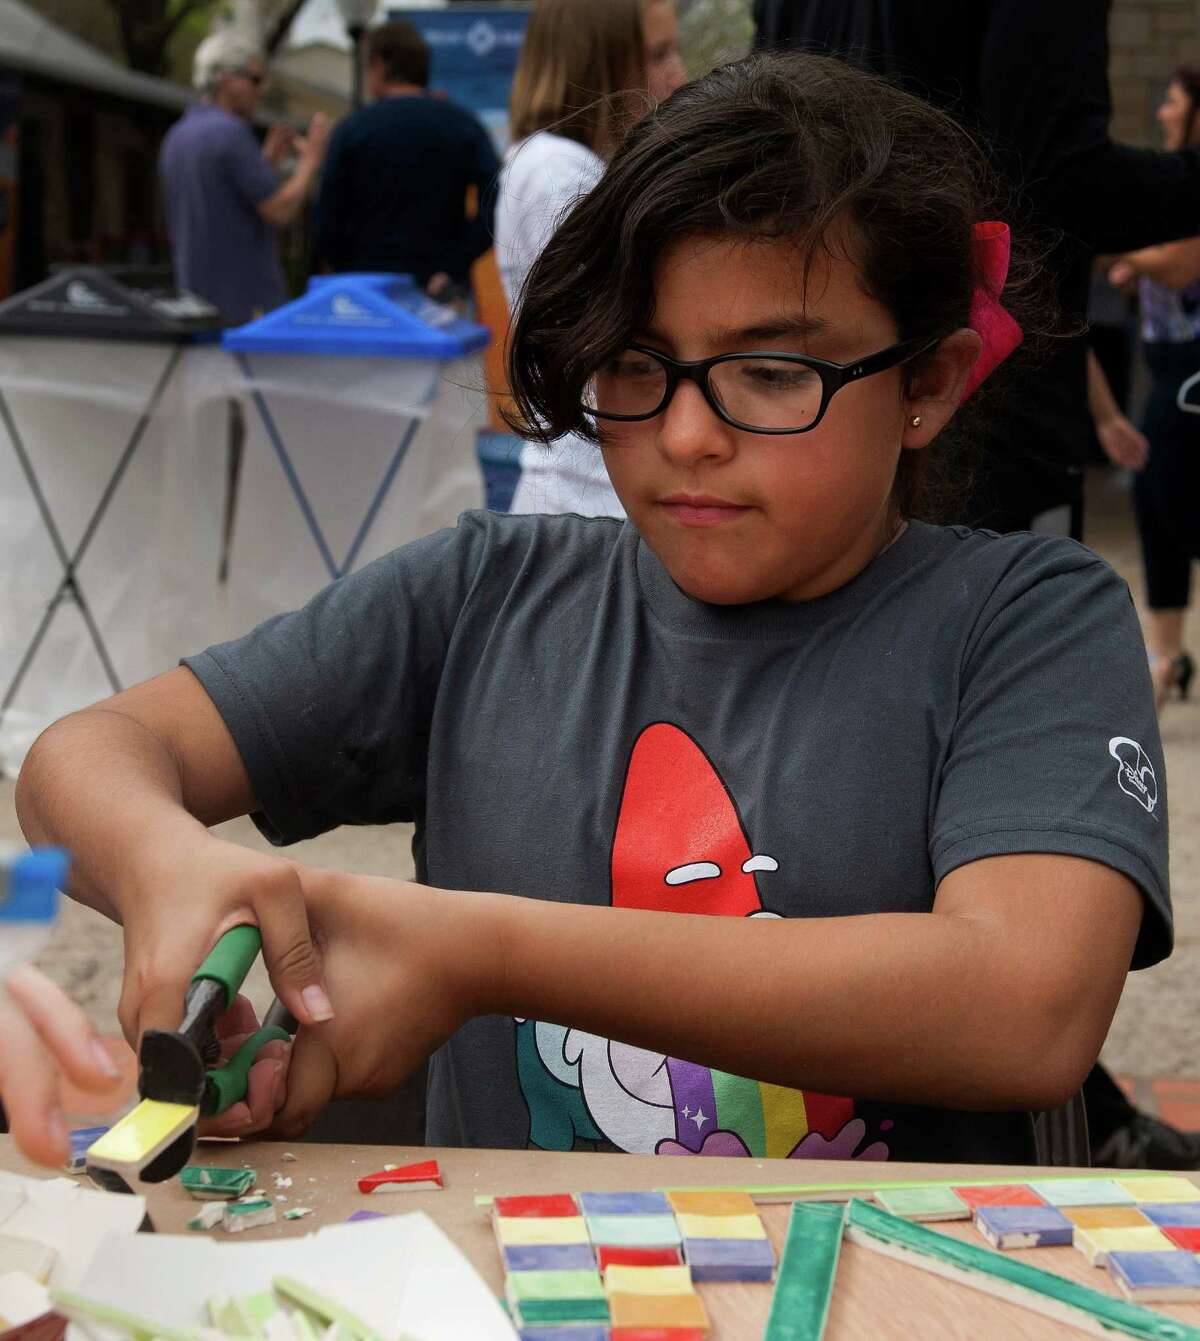 10 year-old Valentina Veliz, daughter of Coral Veliz of San Antonio cuts into a piece of tile as she builds a mosaic piece during the S.M.A.R.T. (Supporting Multiple Arts Resources Together) third annual Pie to the People at the historic La Villita March 9, 2013.